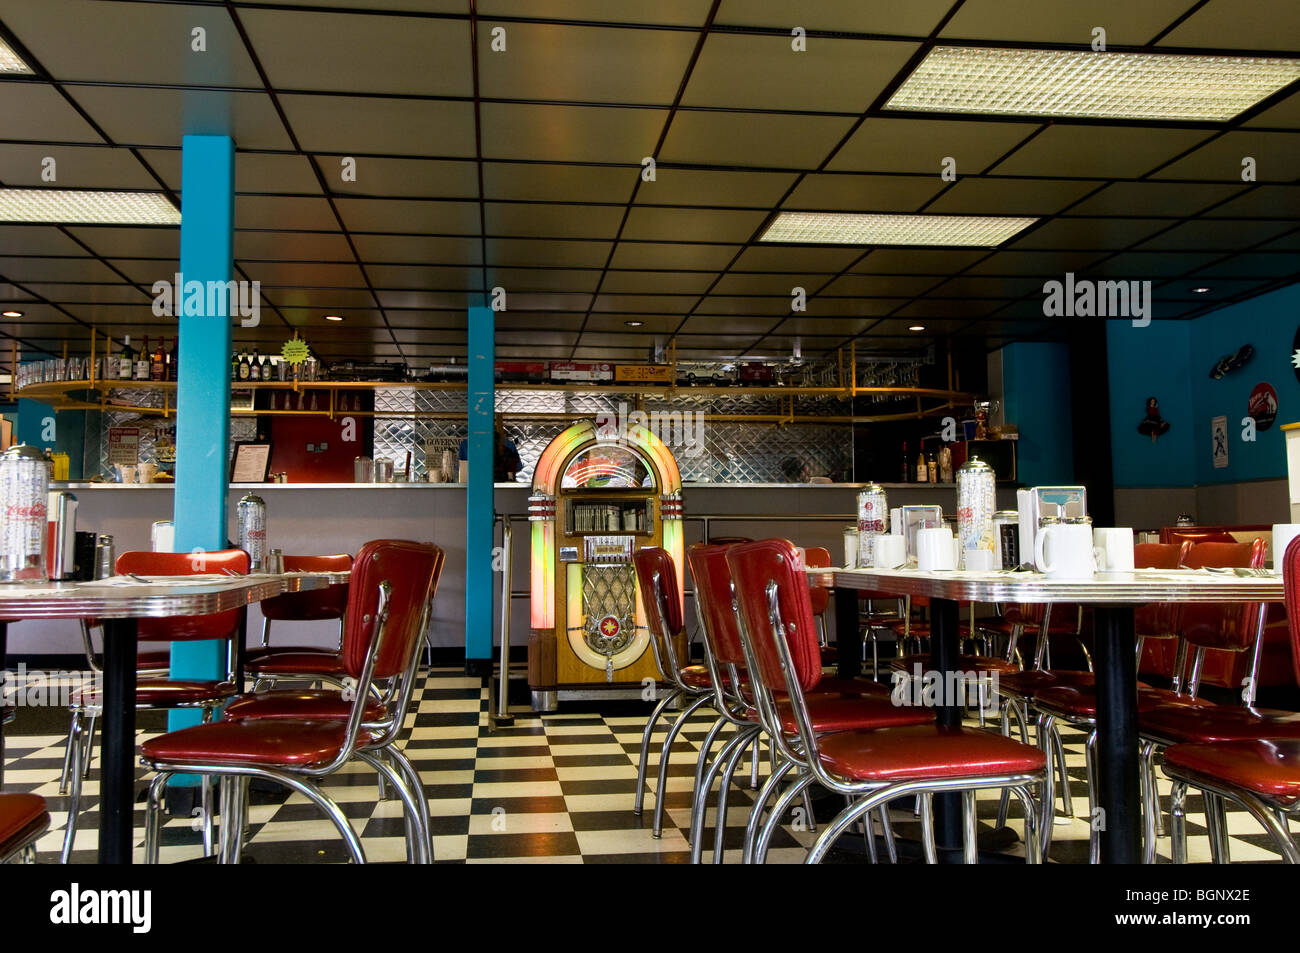 Retro 1950s style diner new york usa stock photo 27526310 alamy - Retro stuhle gunstig ...